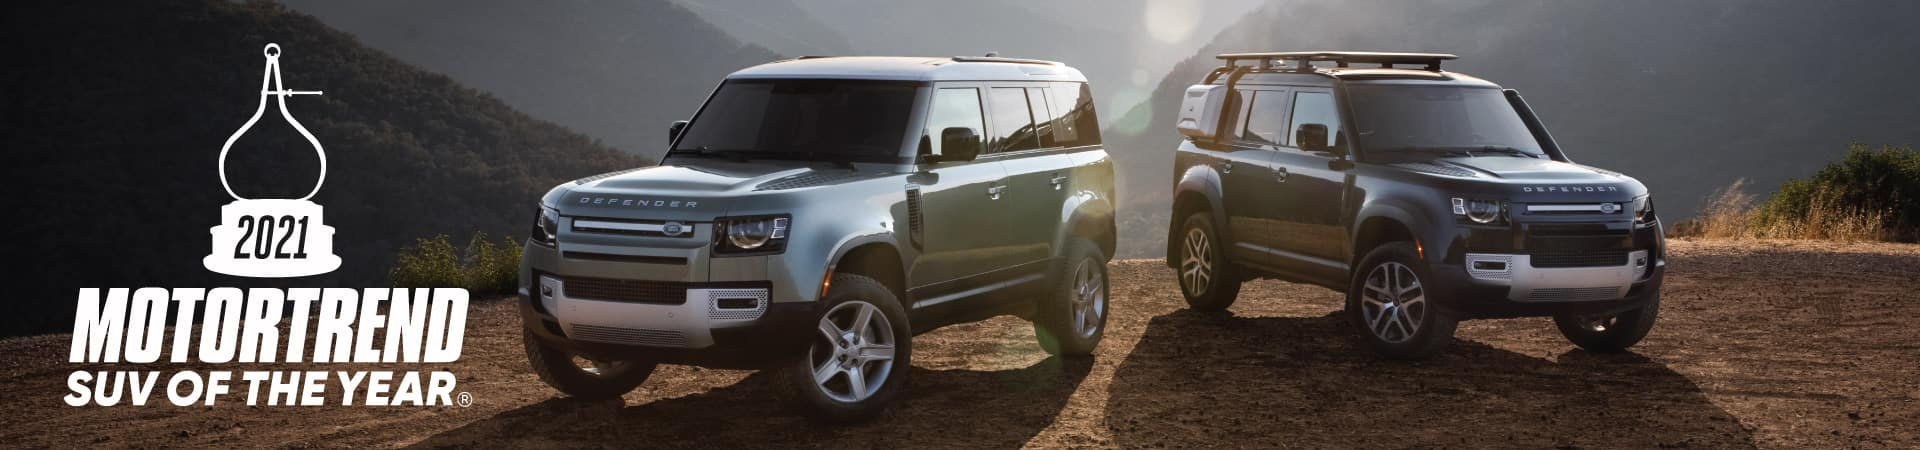 Land Rover Defender wins 2021 SUV of the Year